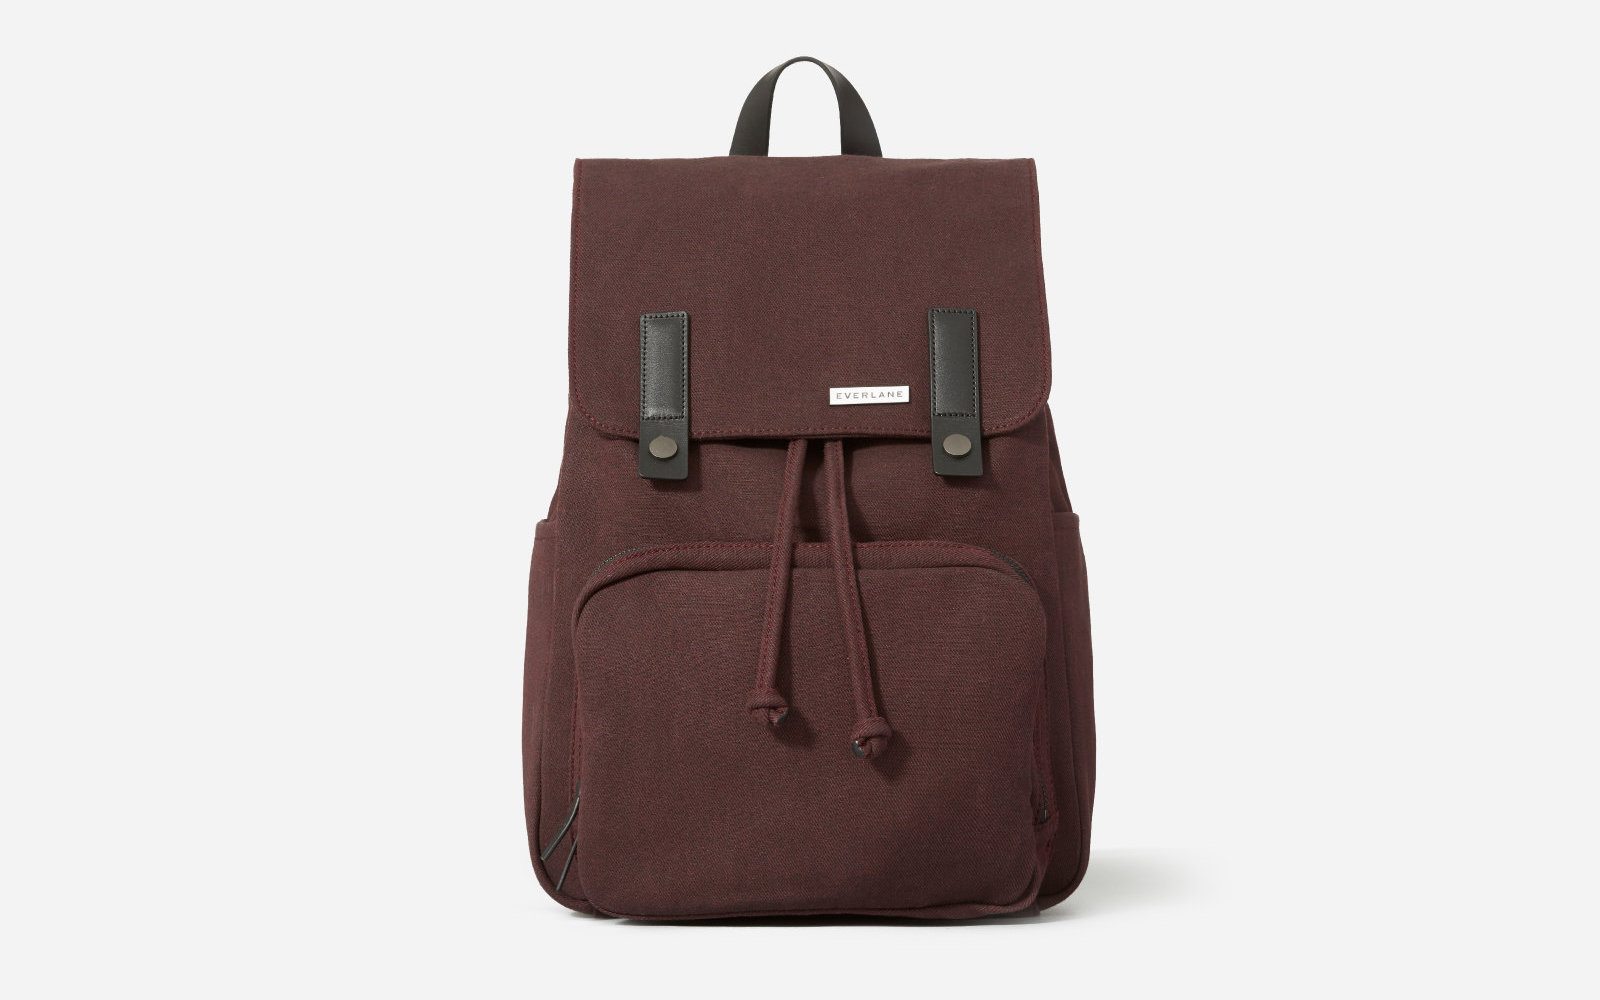 The Most Stylish Travel Backpacks For Women   Travel + Leisure 0b1a0f7cbc